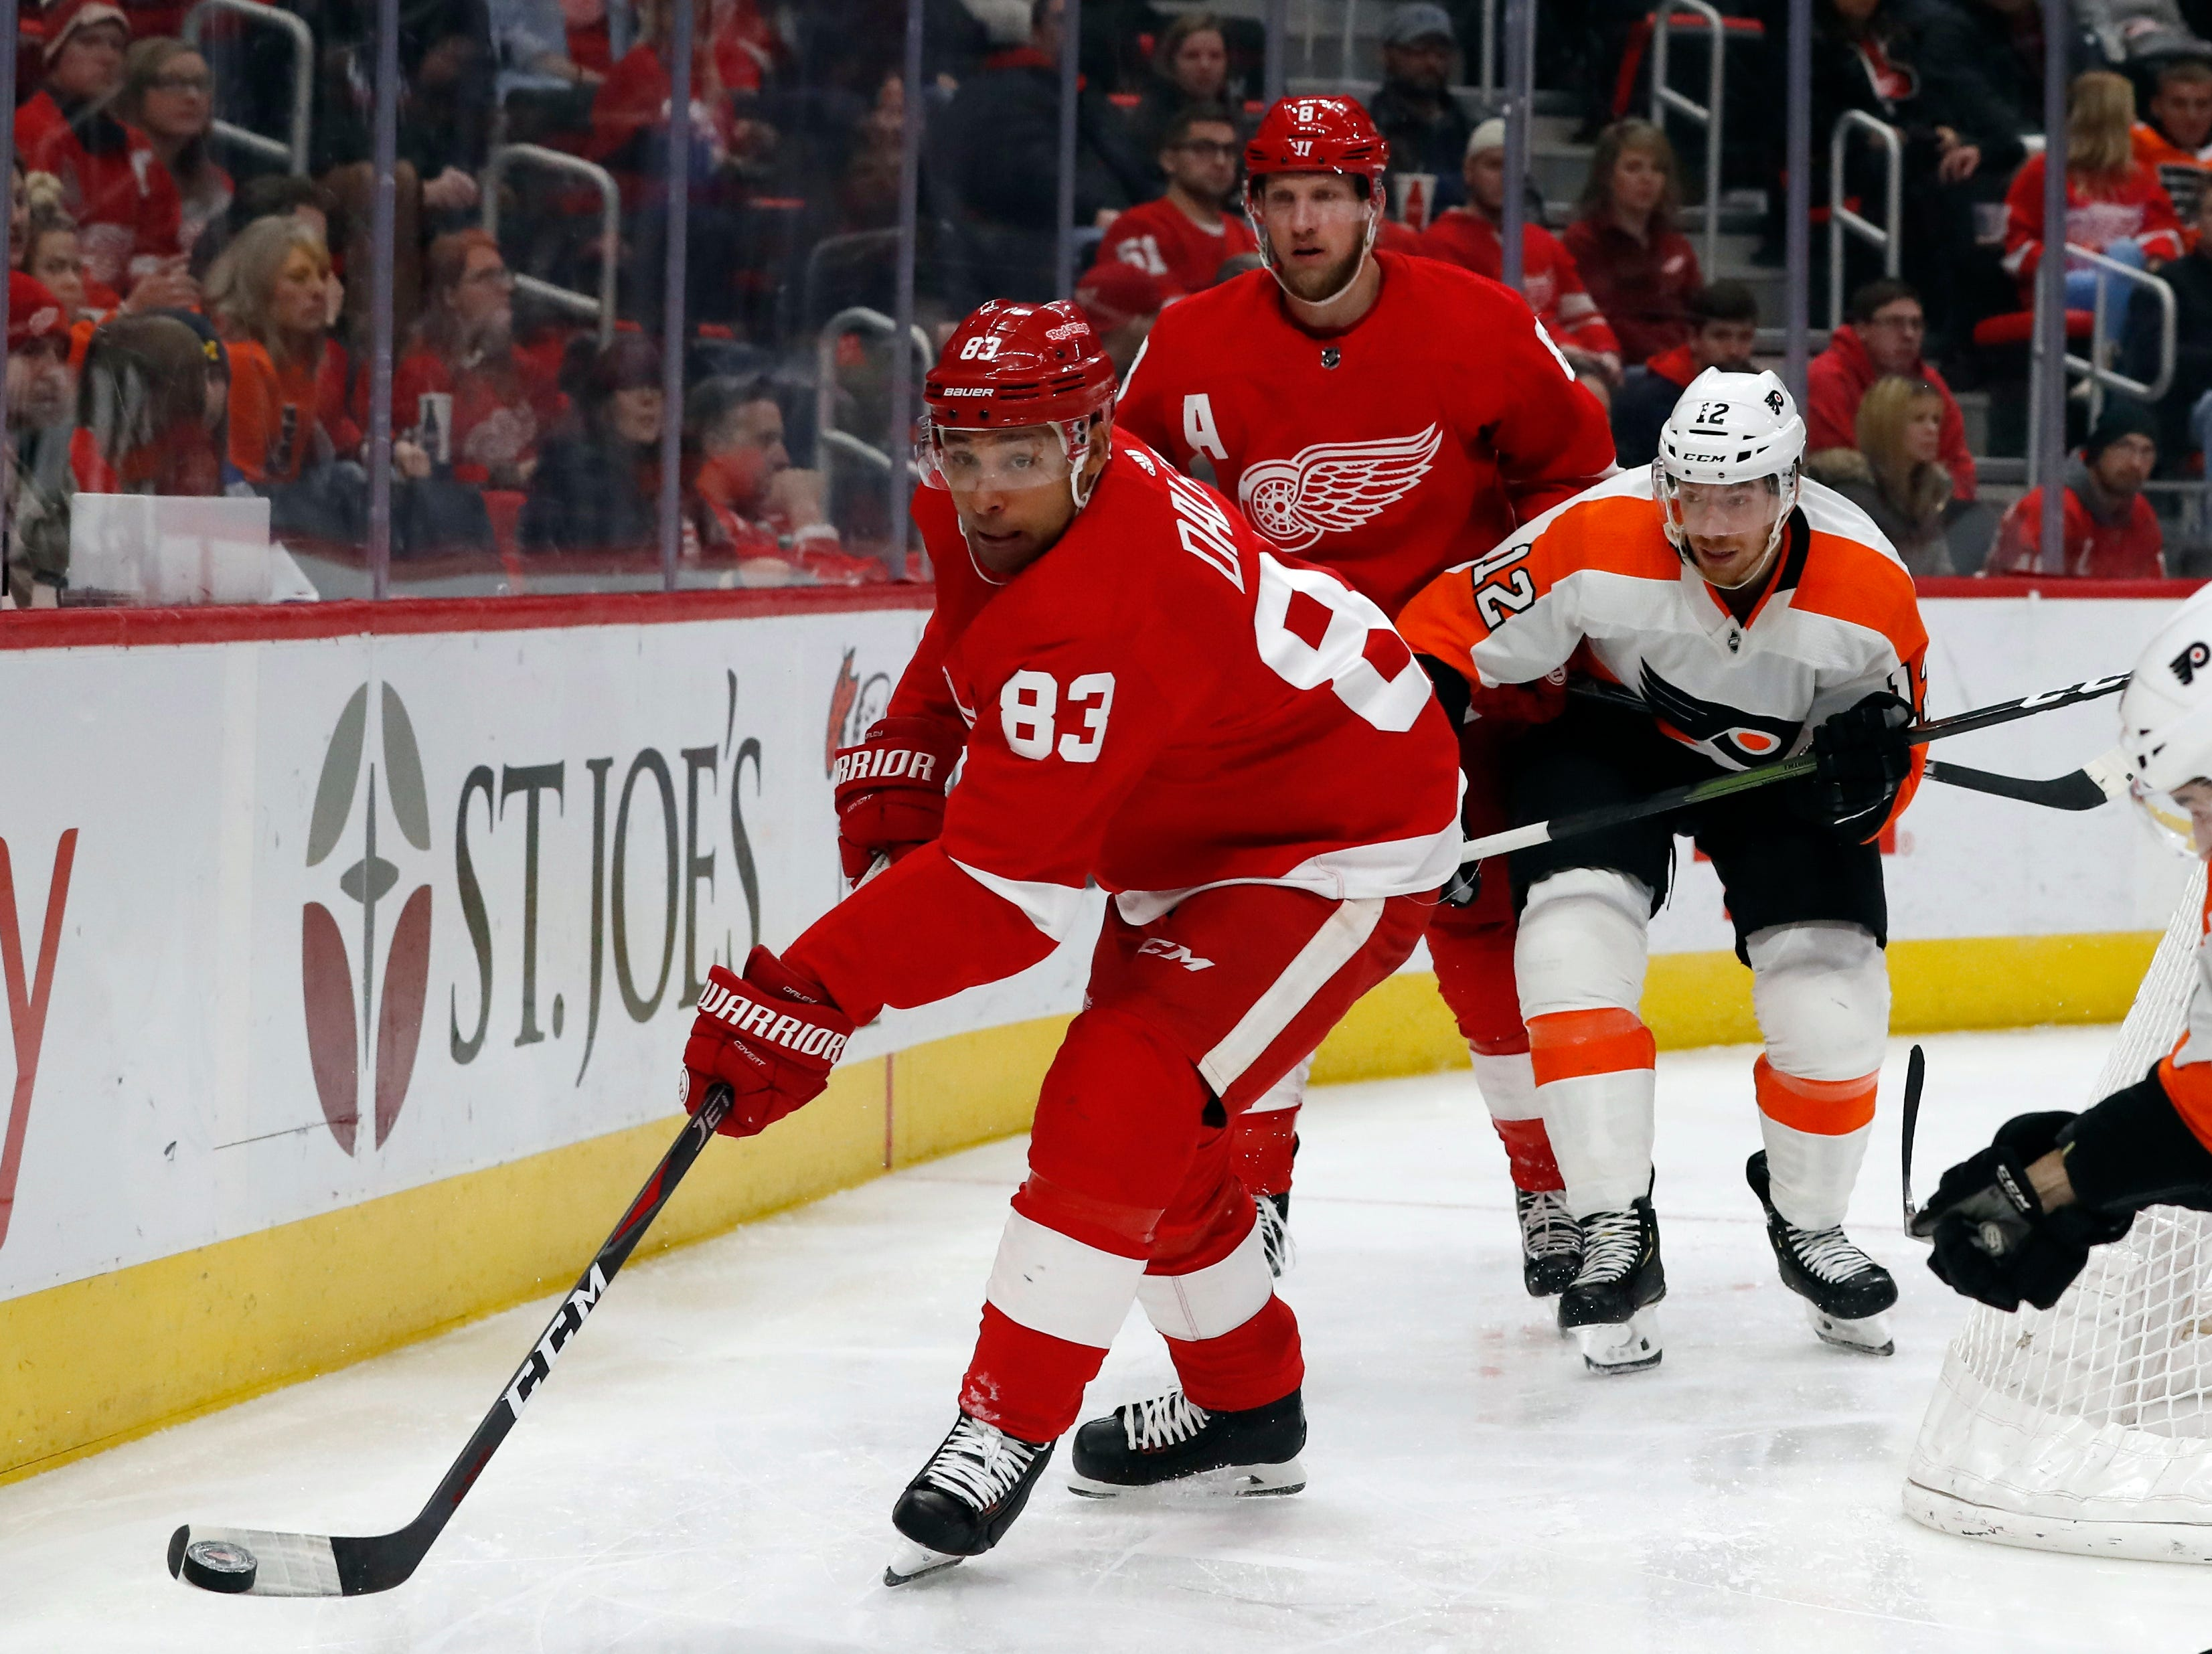 Detroit Red Wings defenseman Trevor Daley (83) controls the puck during the third period.